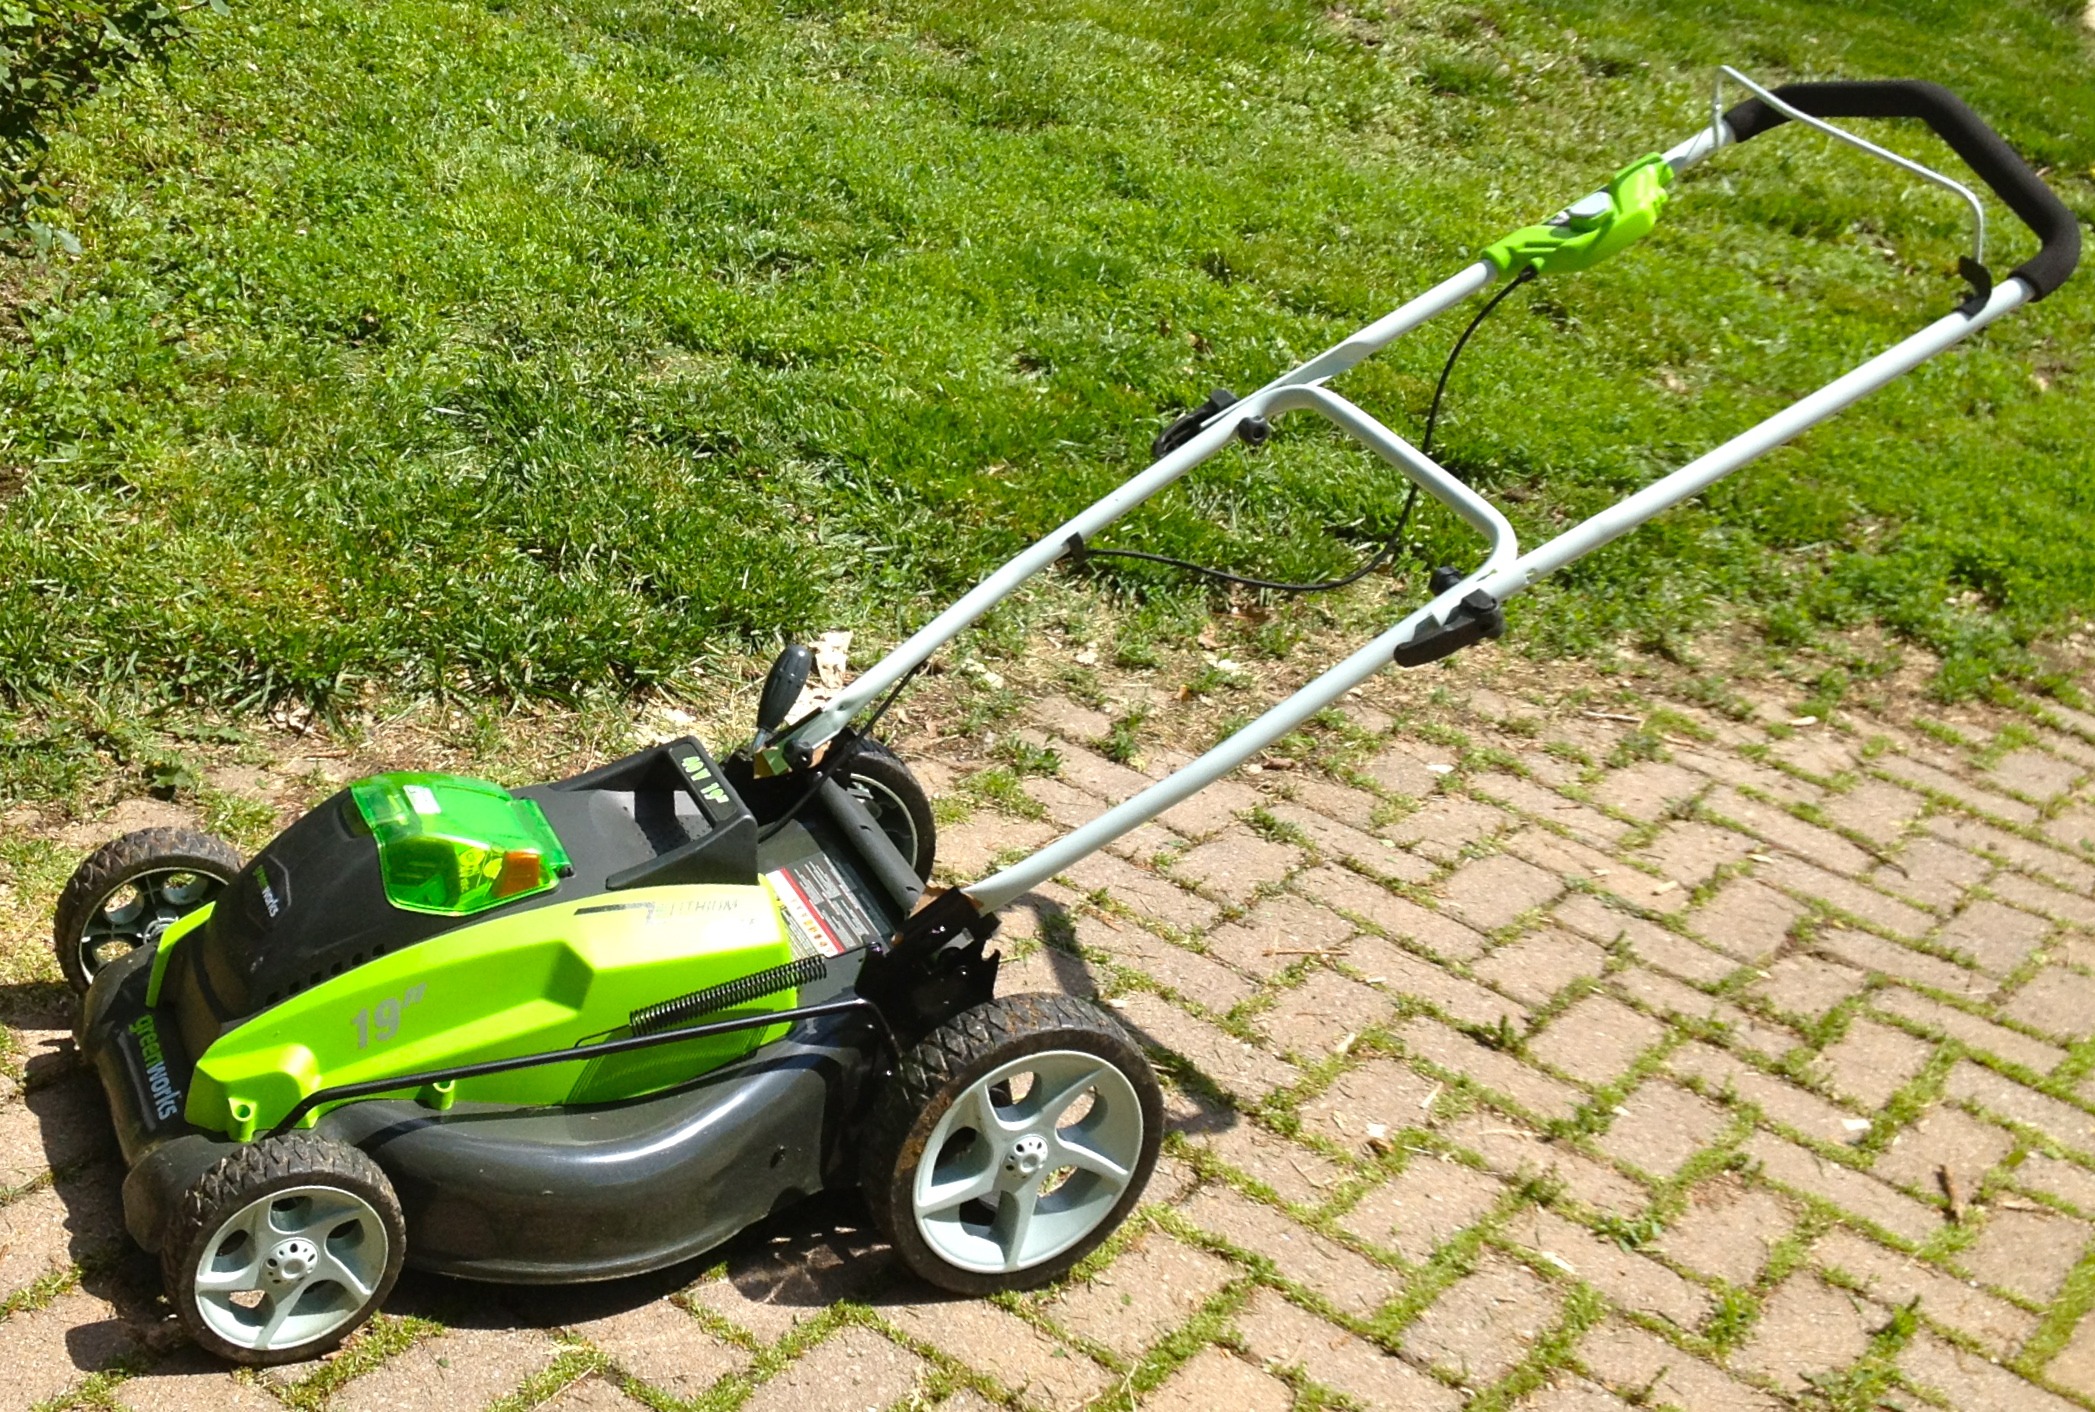 My Big Bright Green Battery Powered Lawn Mowing Machine